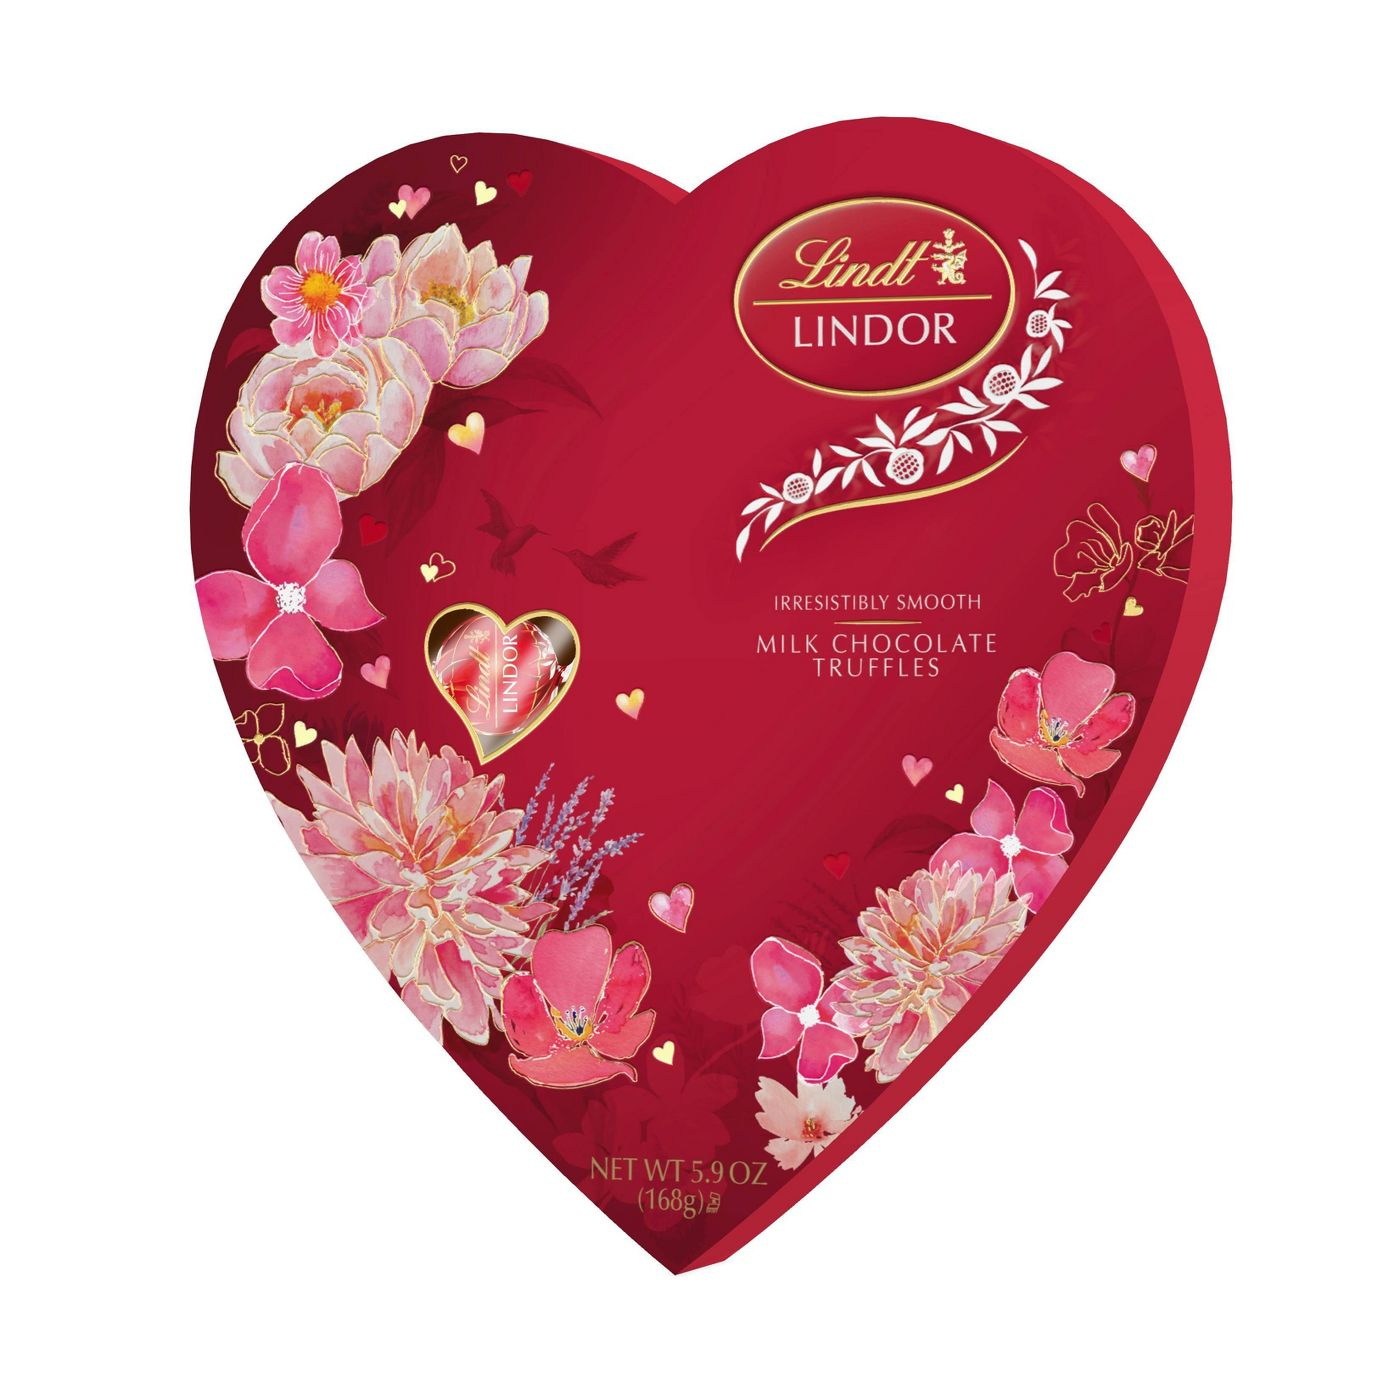 LINDOR Valentine's Day Milk Chocolate Truffles Heart, 5.9oz